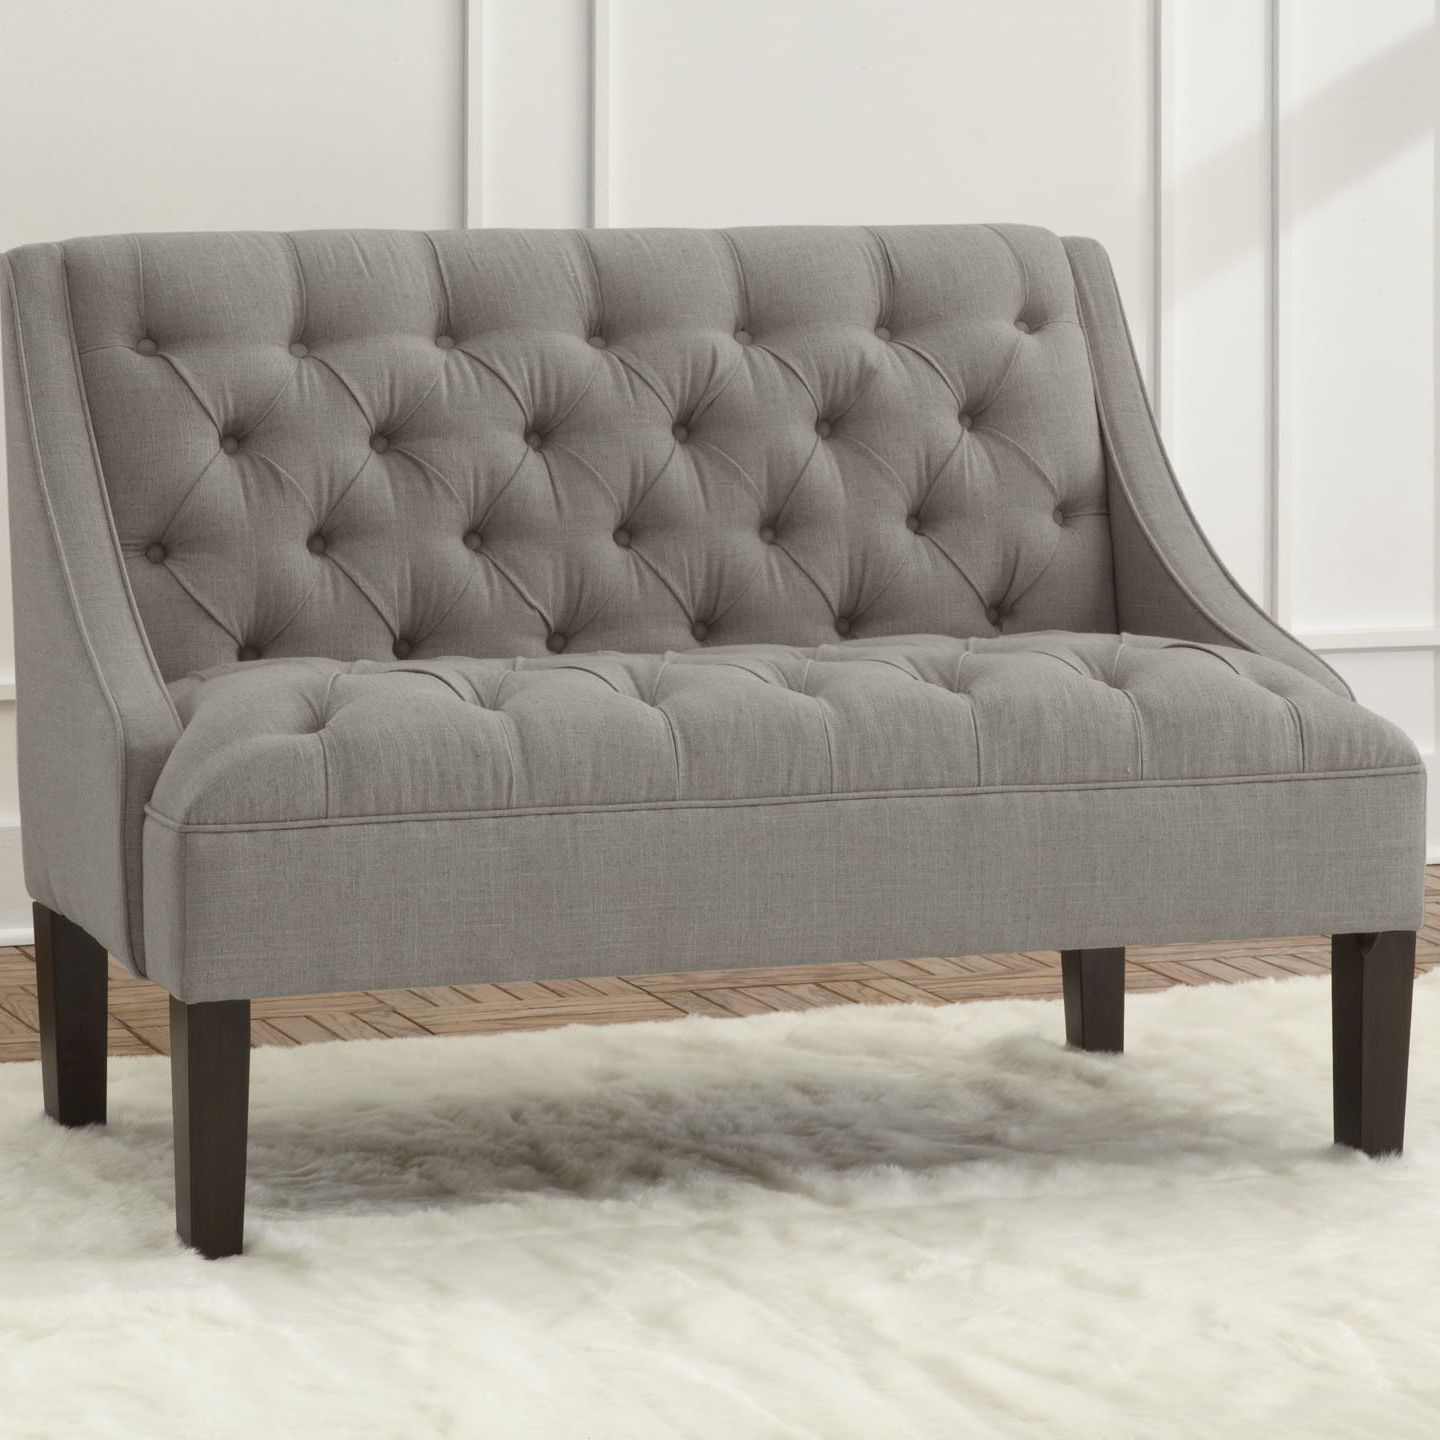 Different Types Of Sofa Settee Sock Arm: Skyline Furniture Settee Loveseat - Love This High-back Loveseat